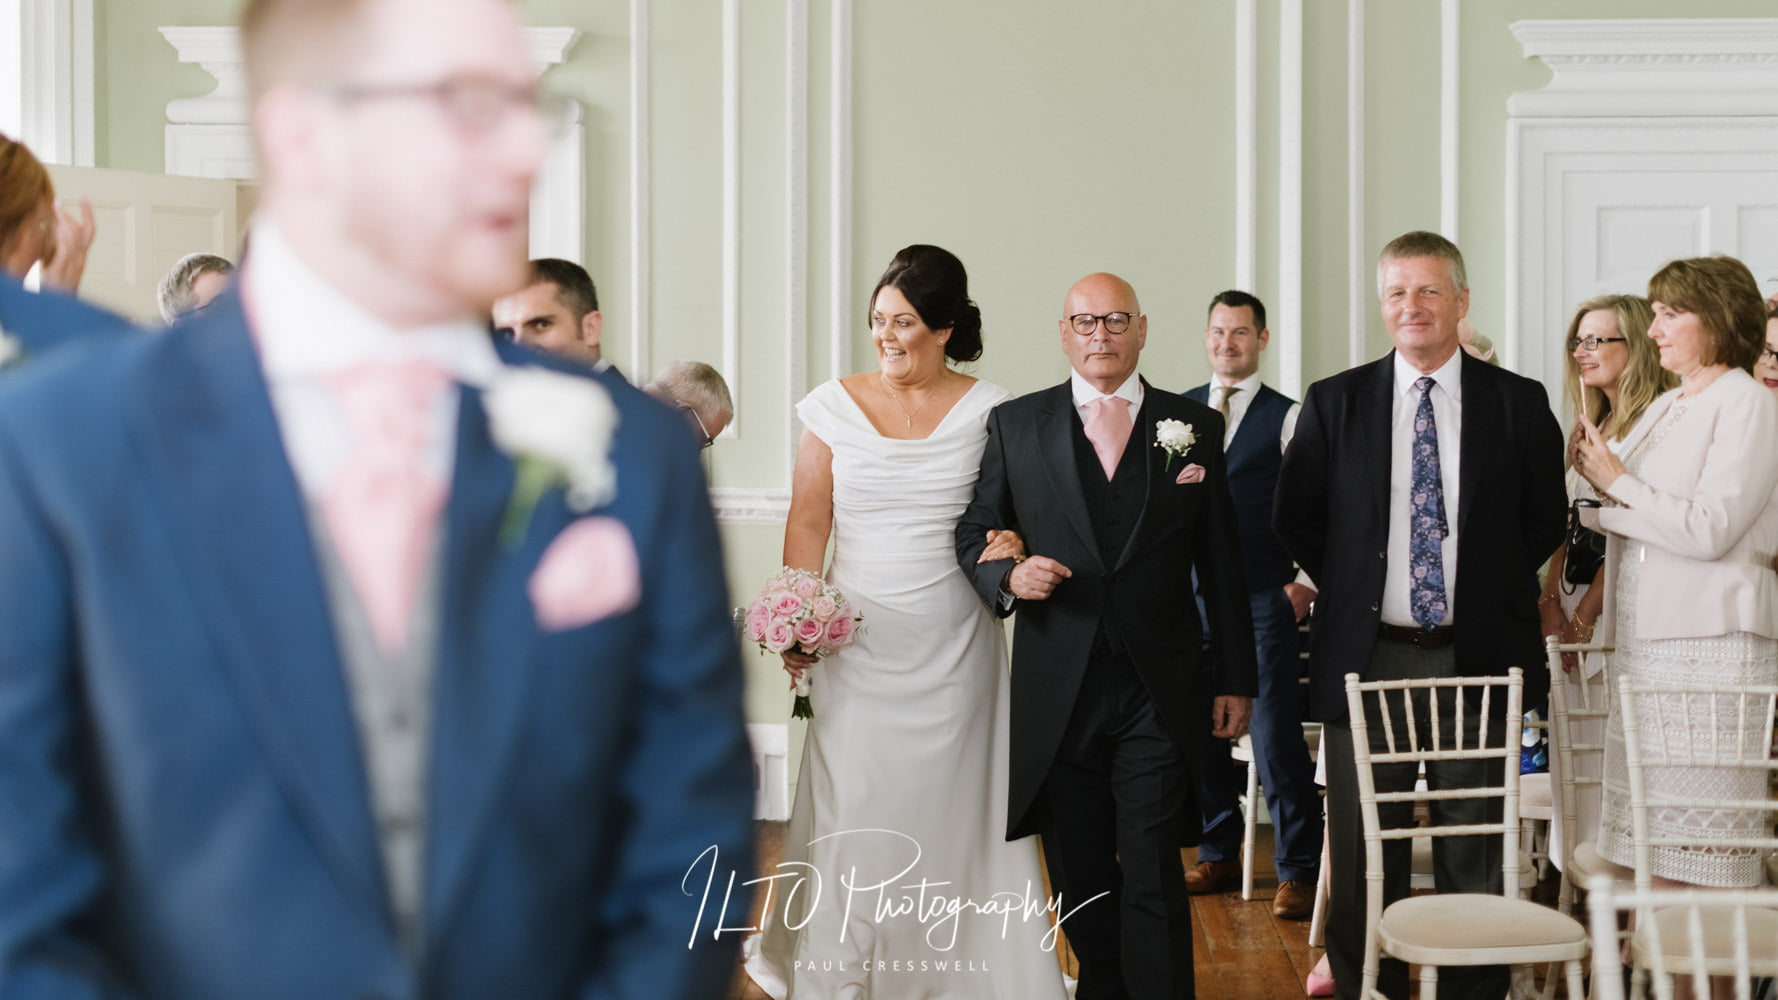 Cusworth Hall wedding photographer Doncaster affordable